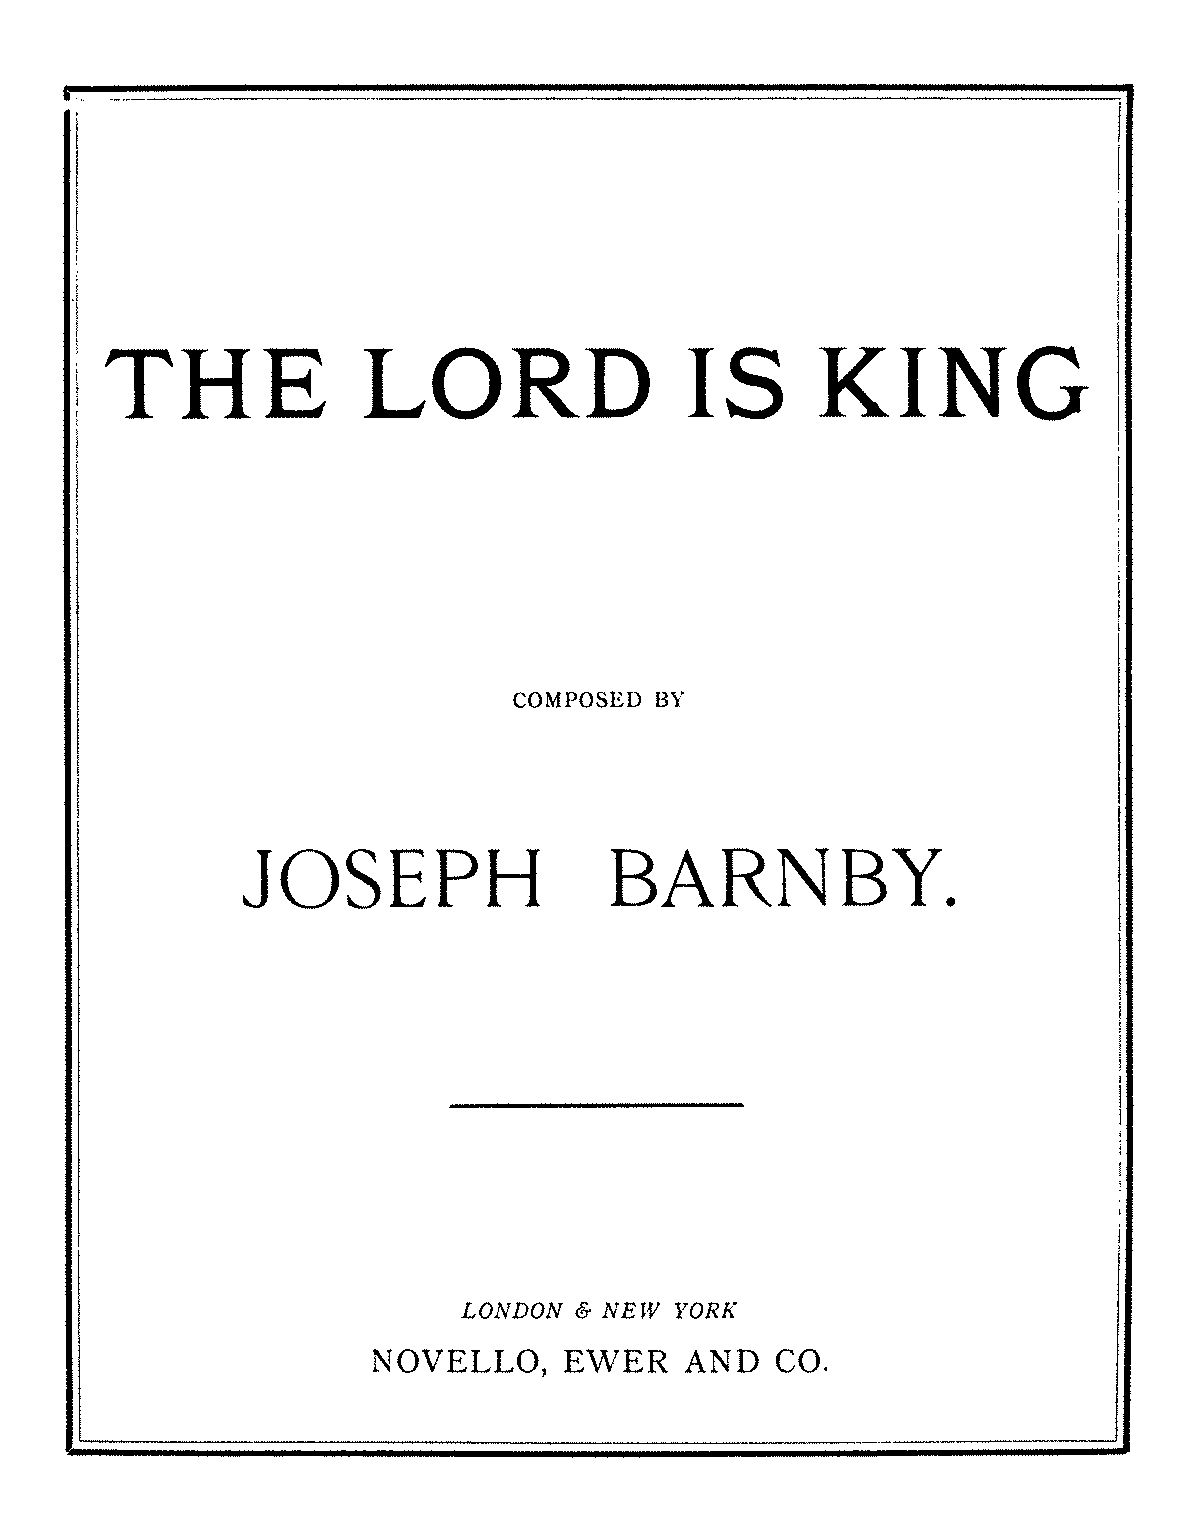 PMLP327496-JBarnby The Lord is King fullscore.pdf